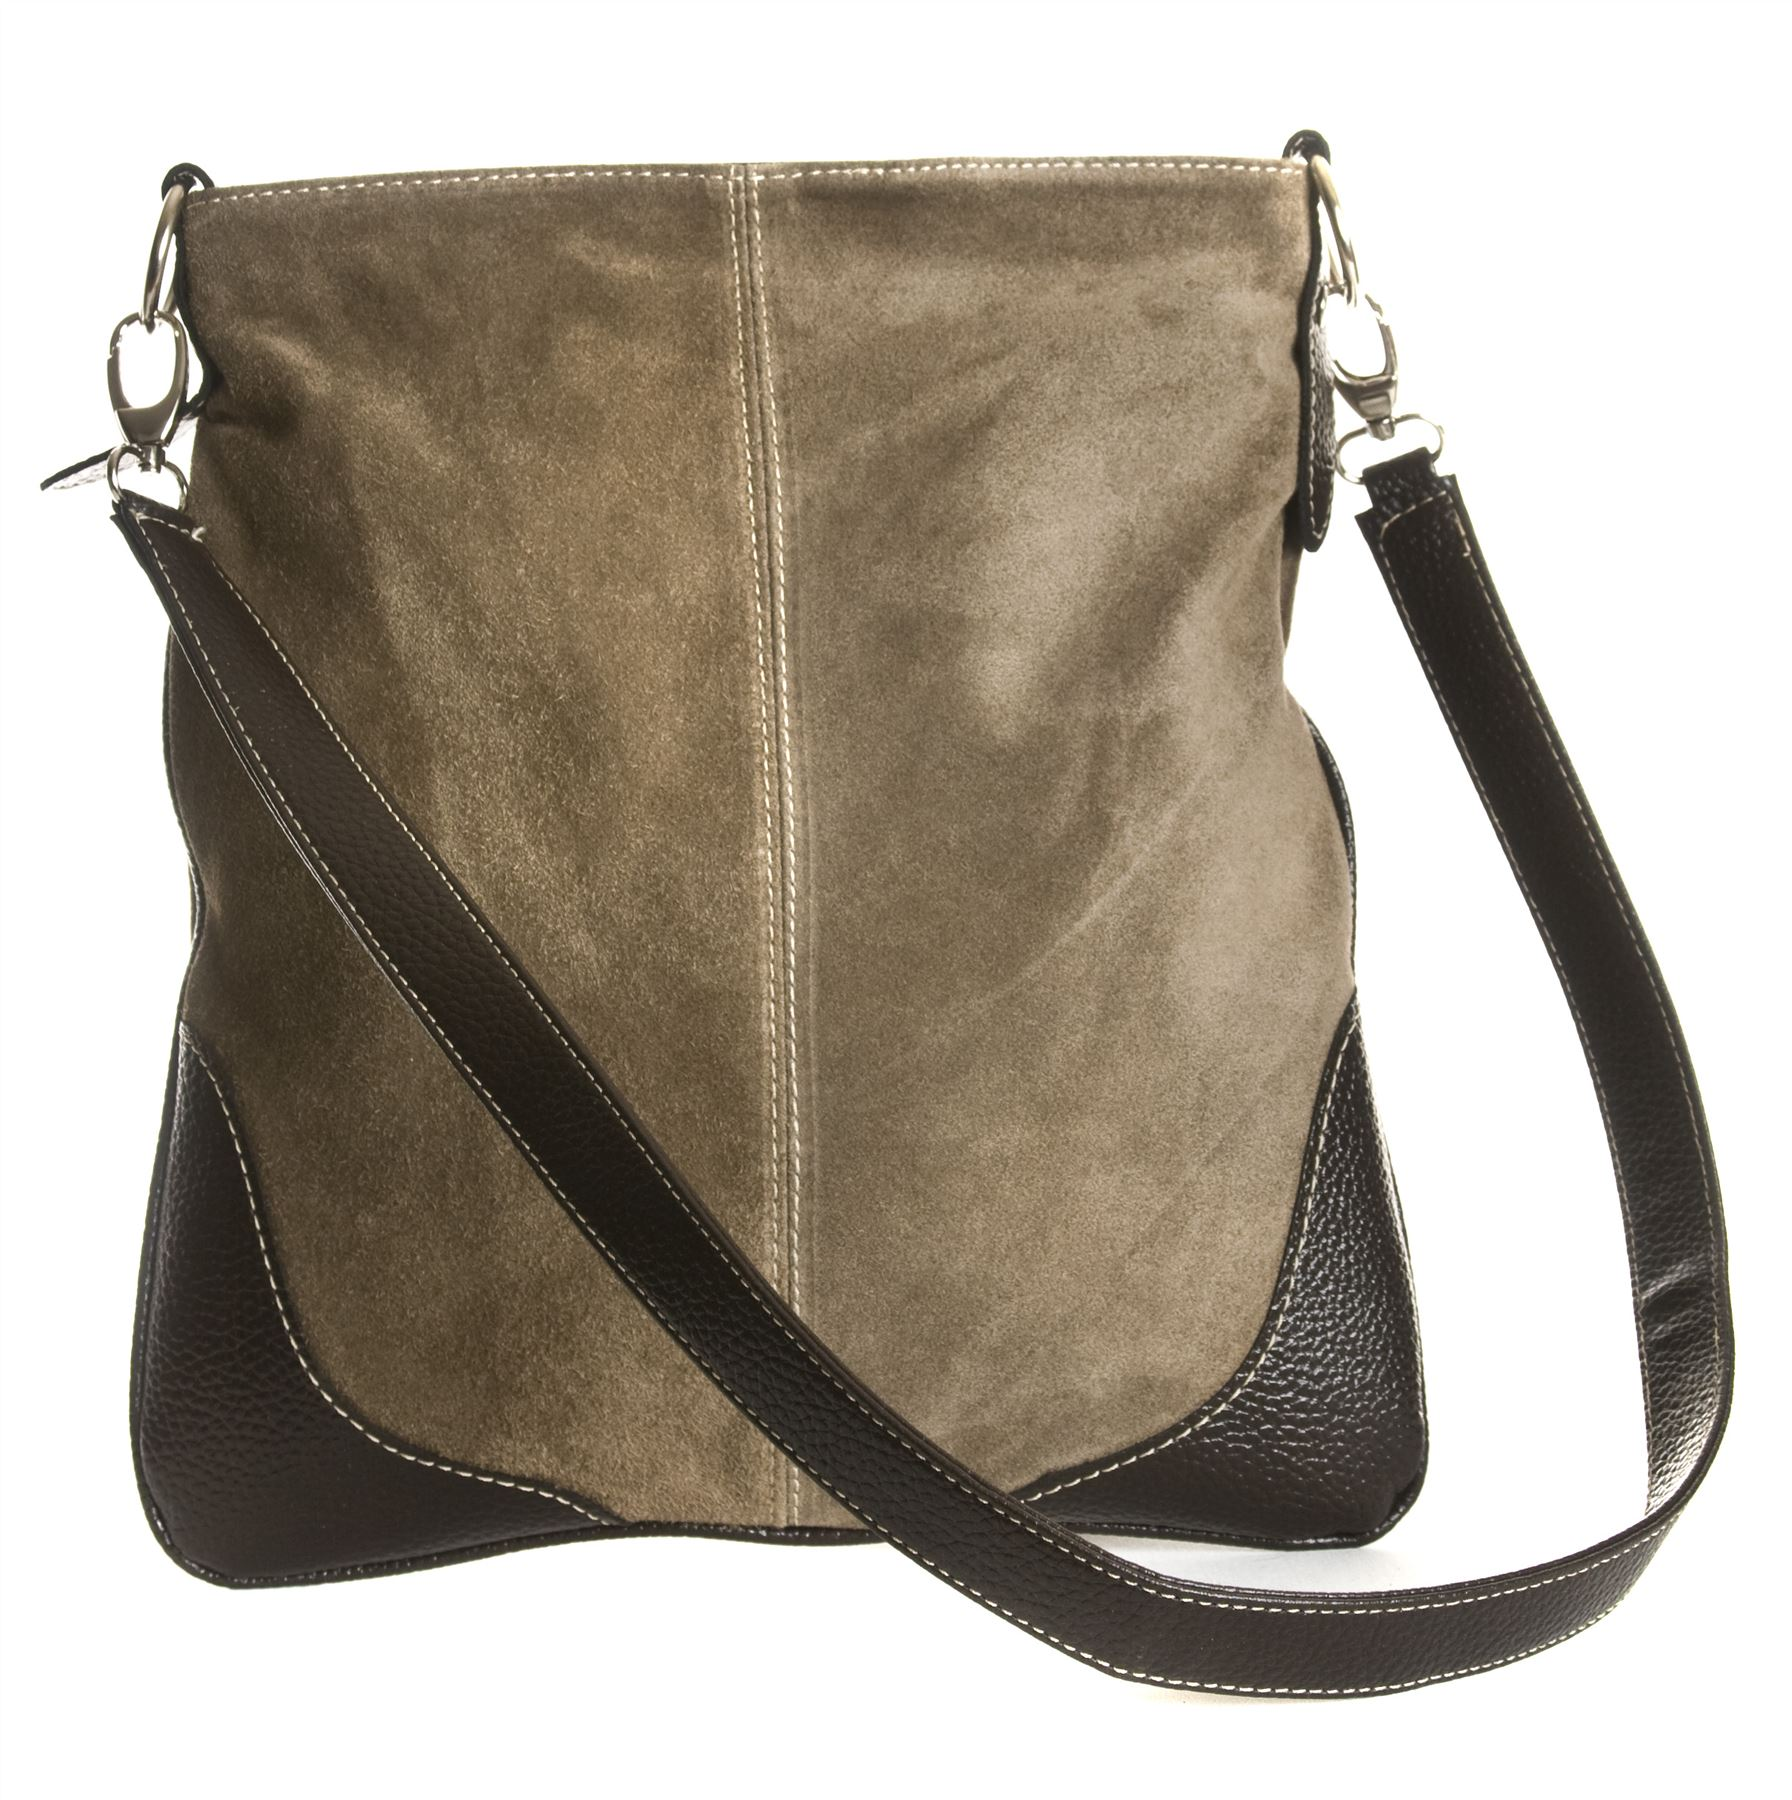 Find great deals on eBay for suede bag. Shop with confidence.